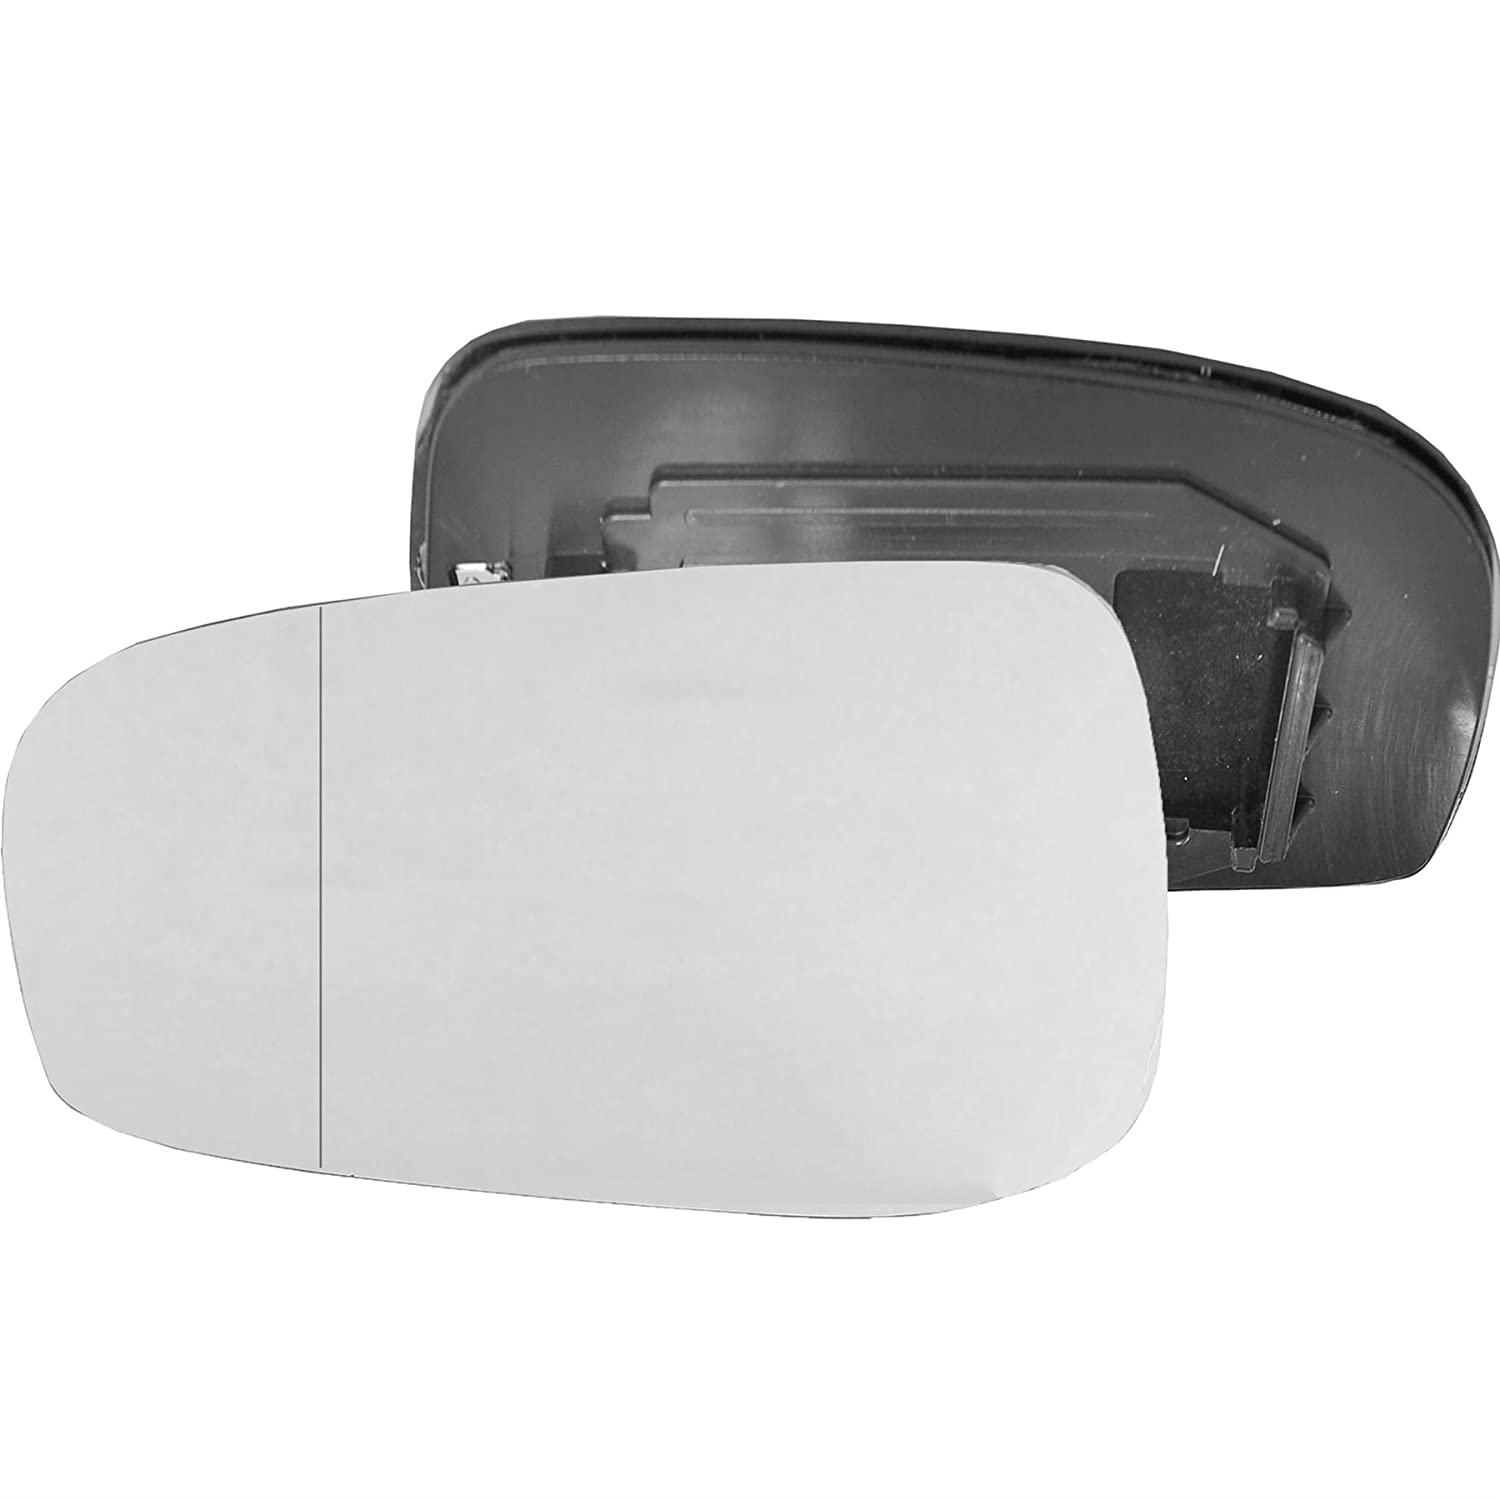 Passenger left hand side Heated wing door Silver mirror glass with backing plate #W-SHY/L-VOS8003 [Clip On]